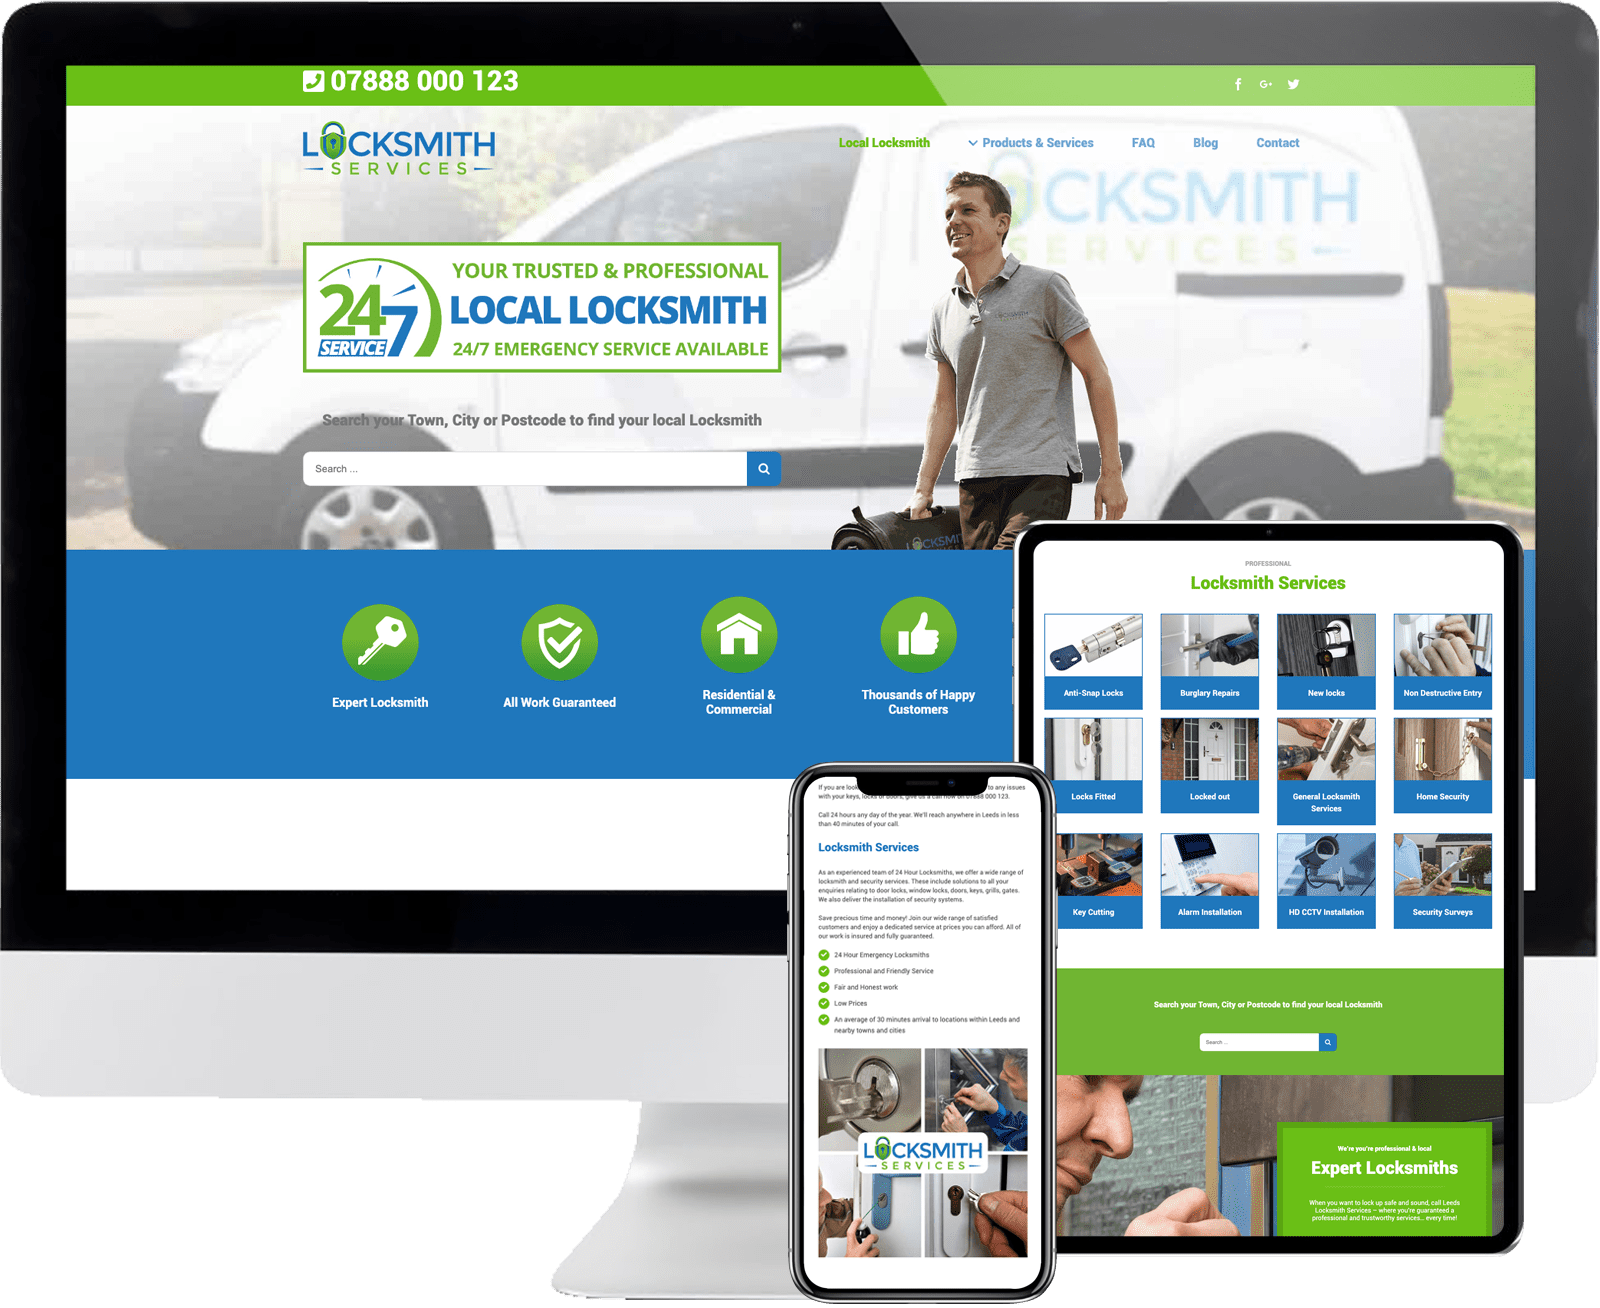 Locksmith service 247 devices